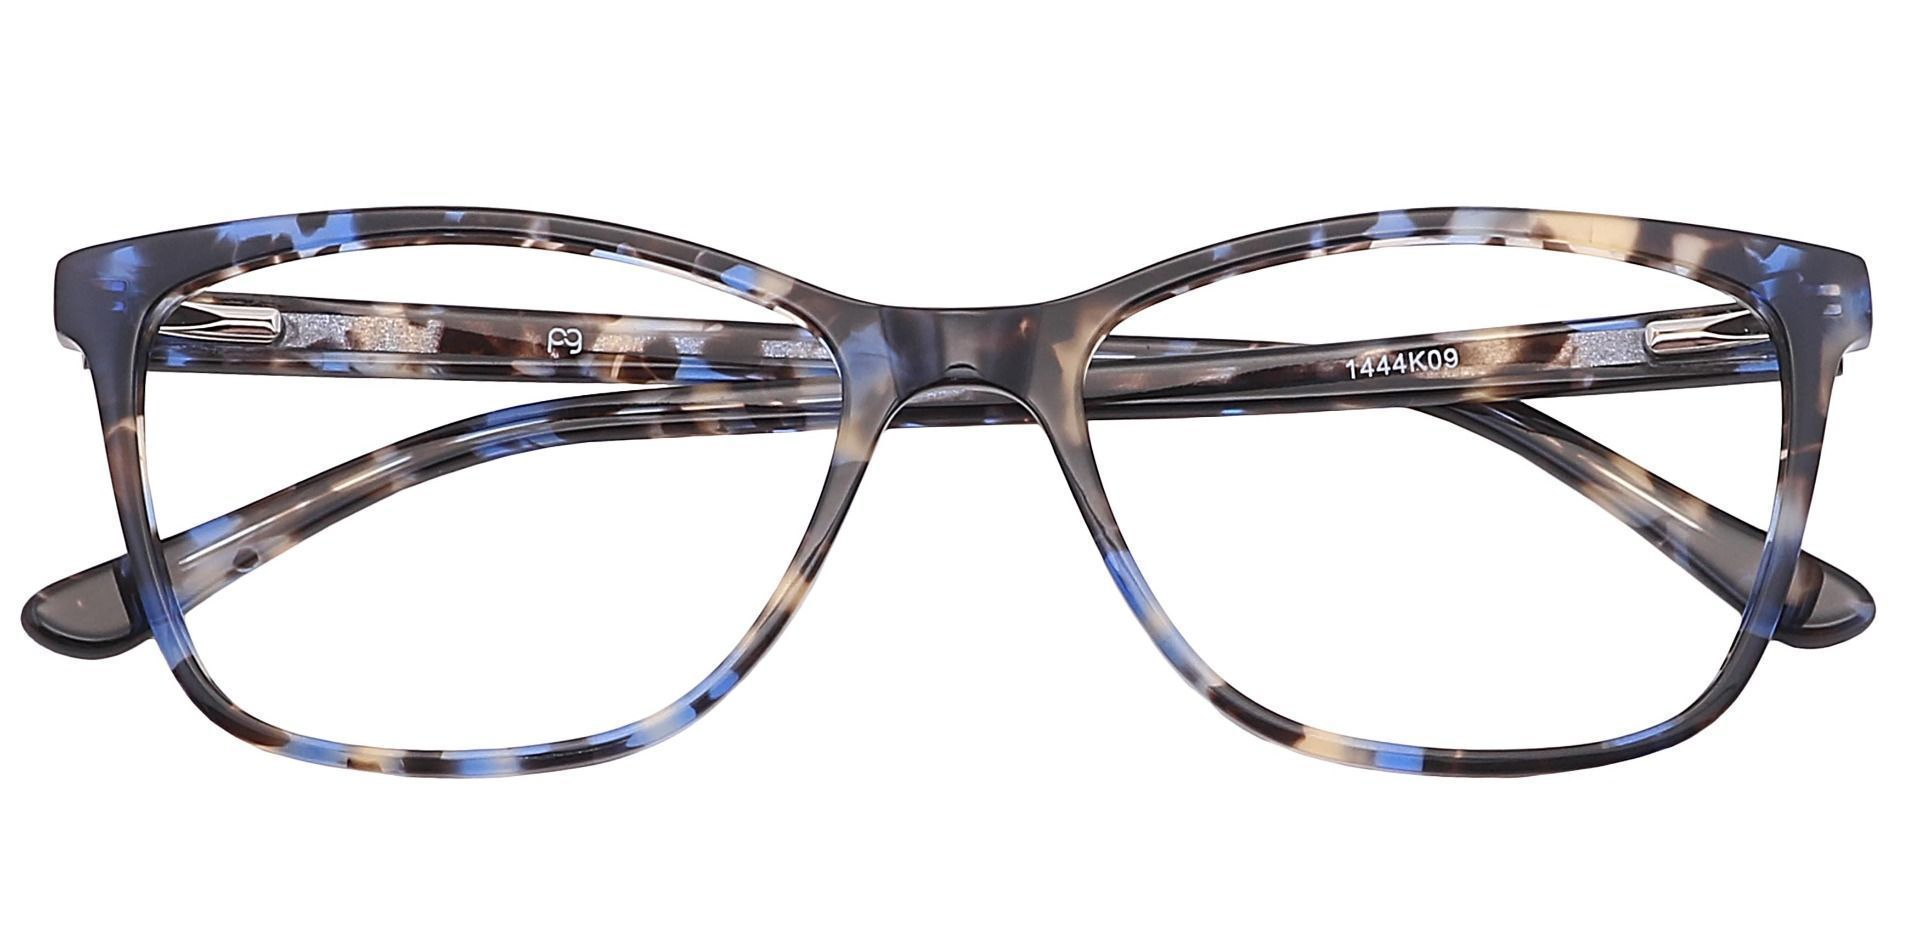 Antonia Square Prescription Glasses - Black